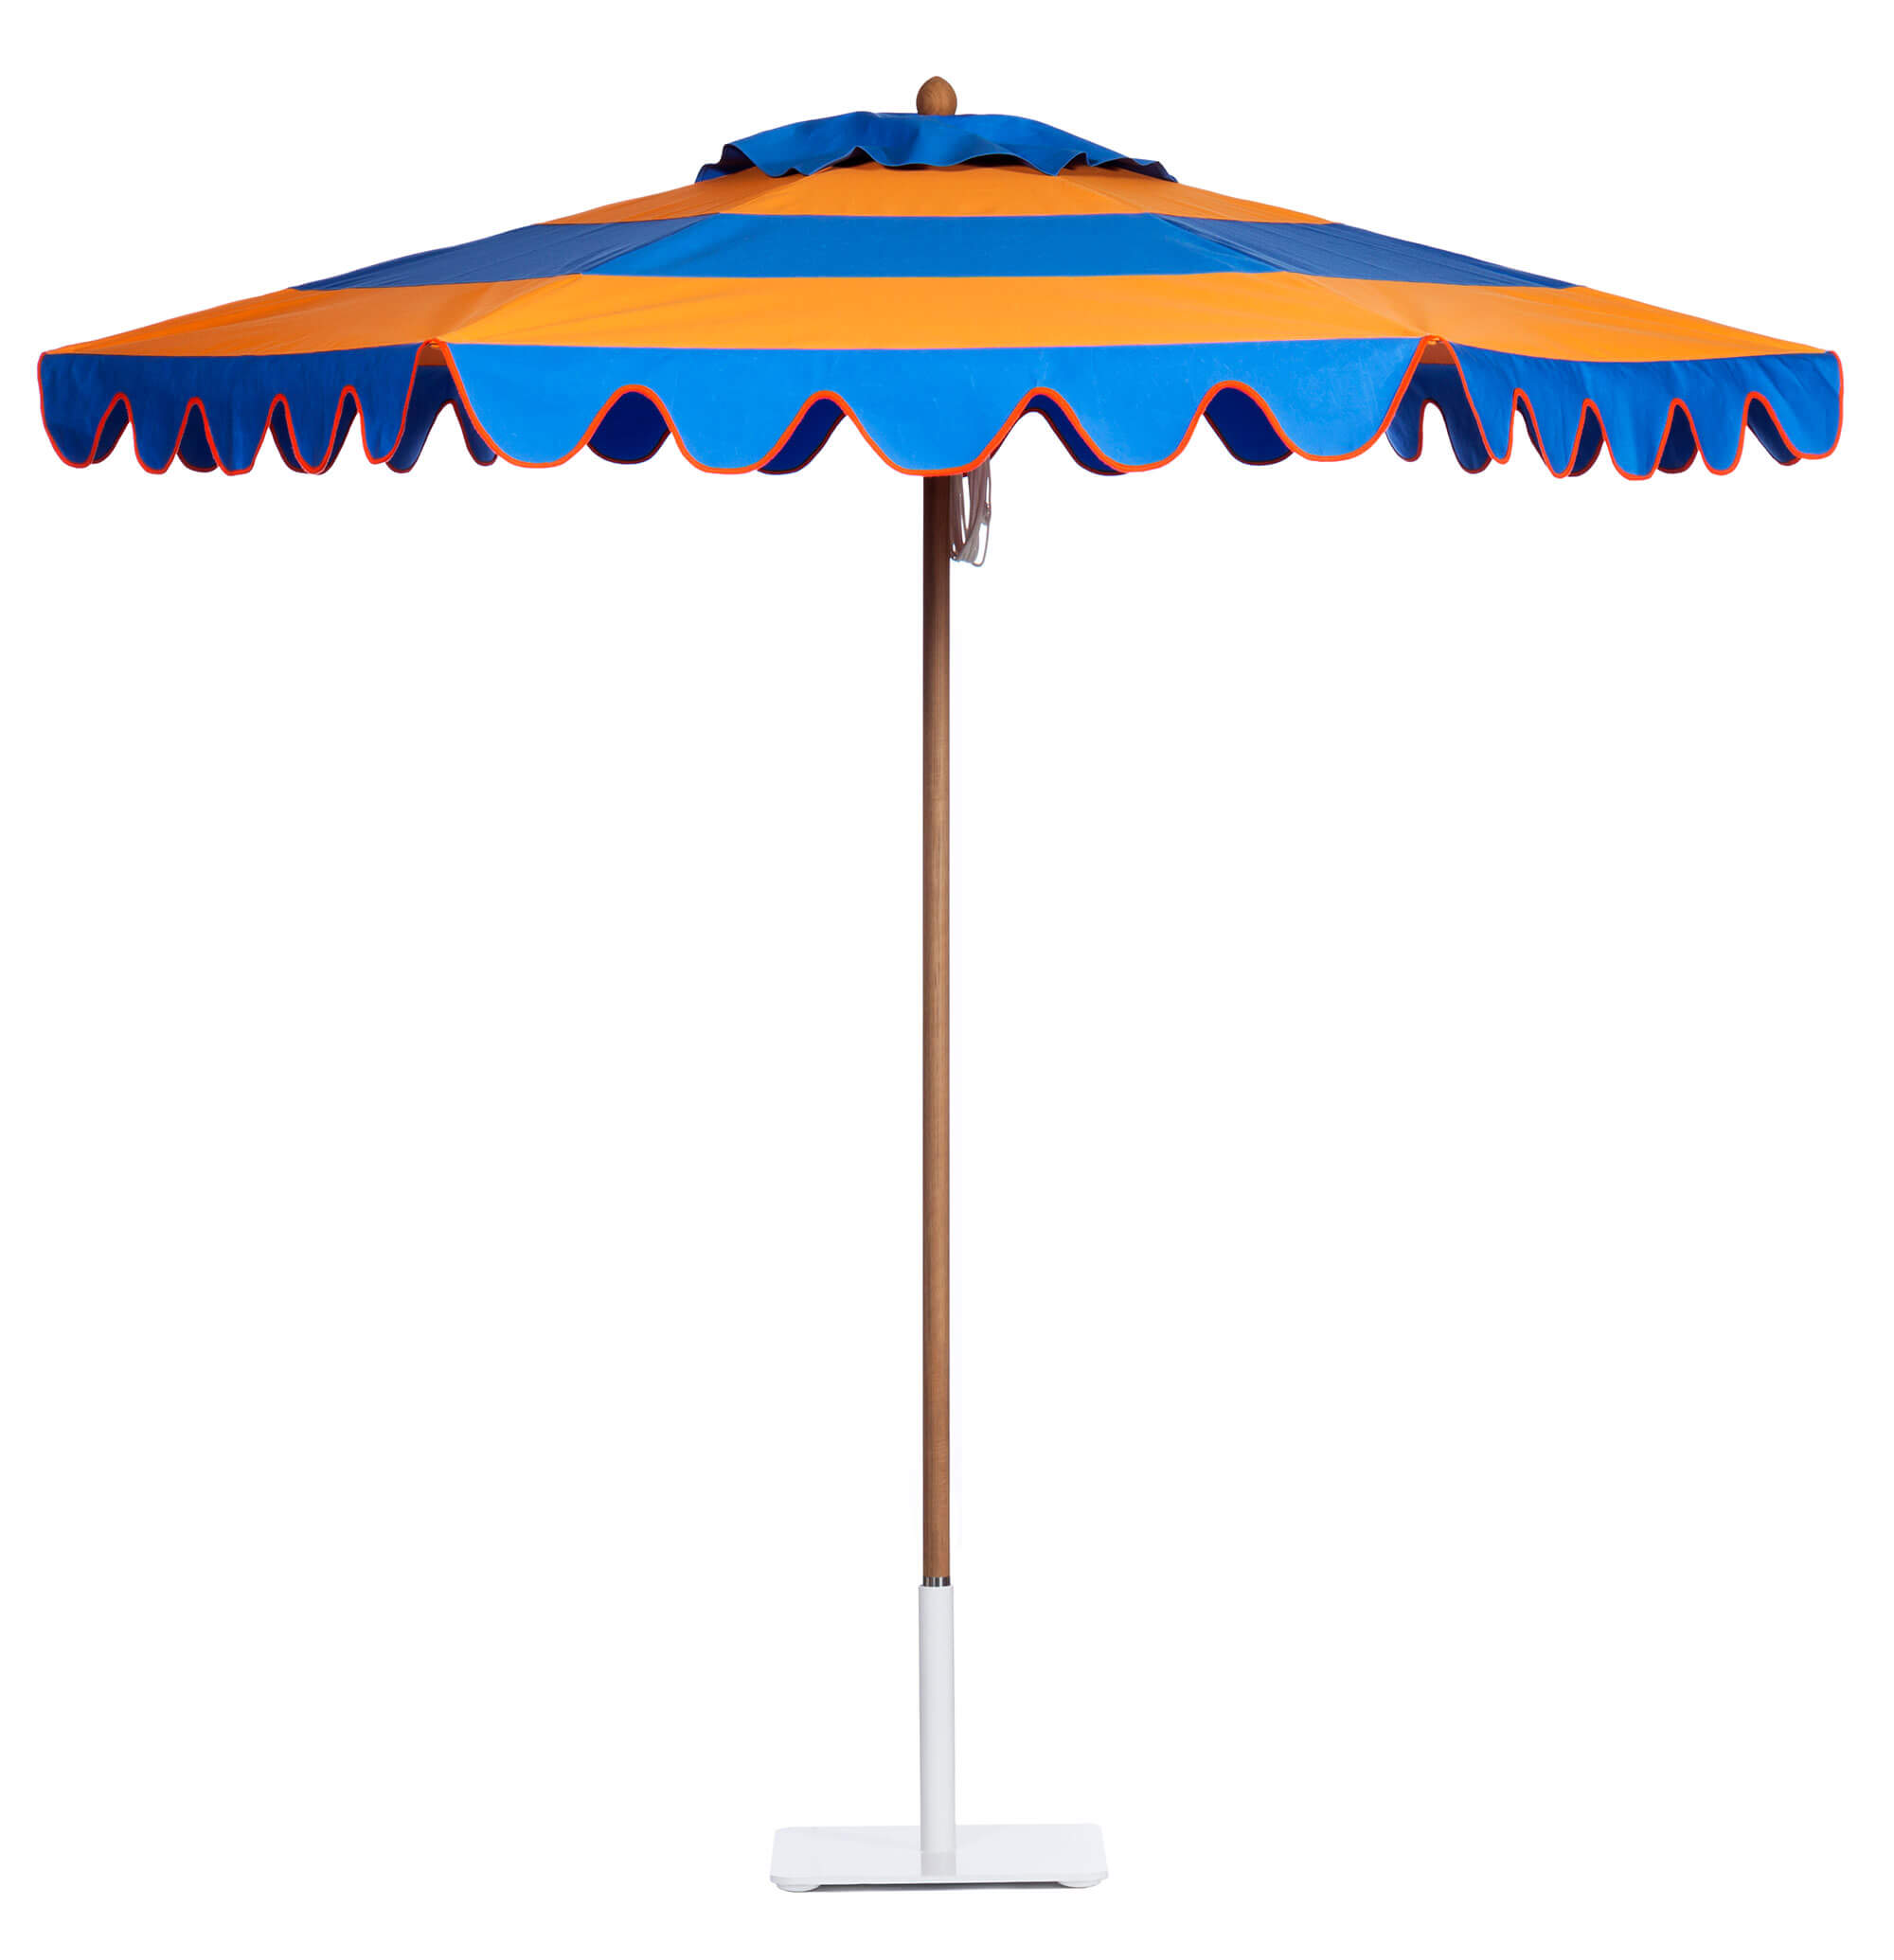 Tango Orange / Indigo Umbrella Image